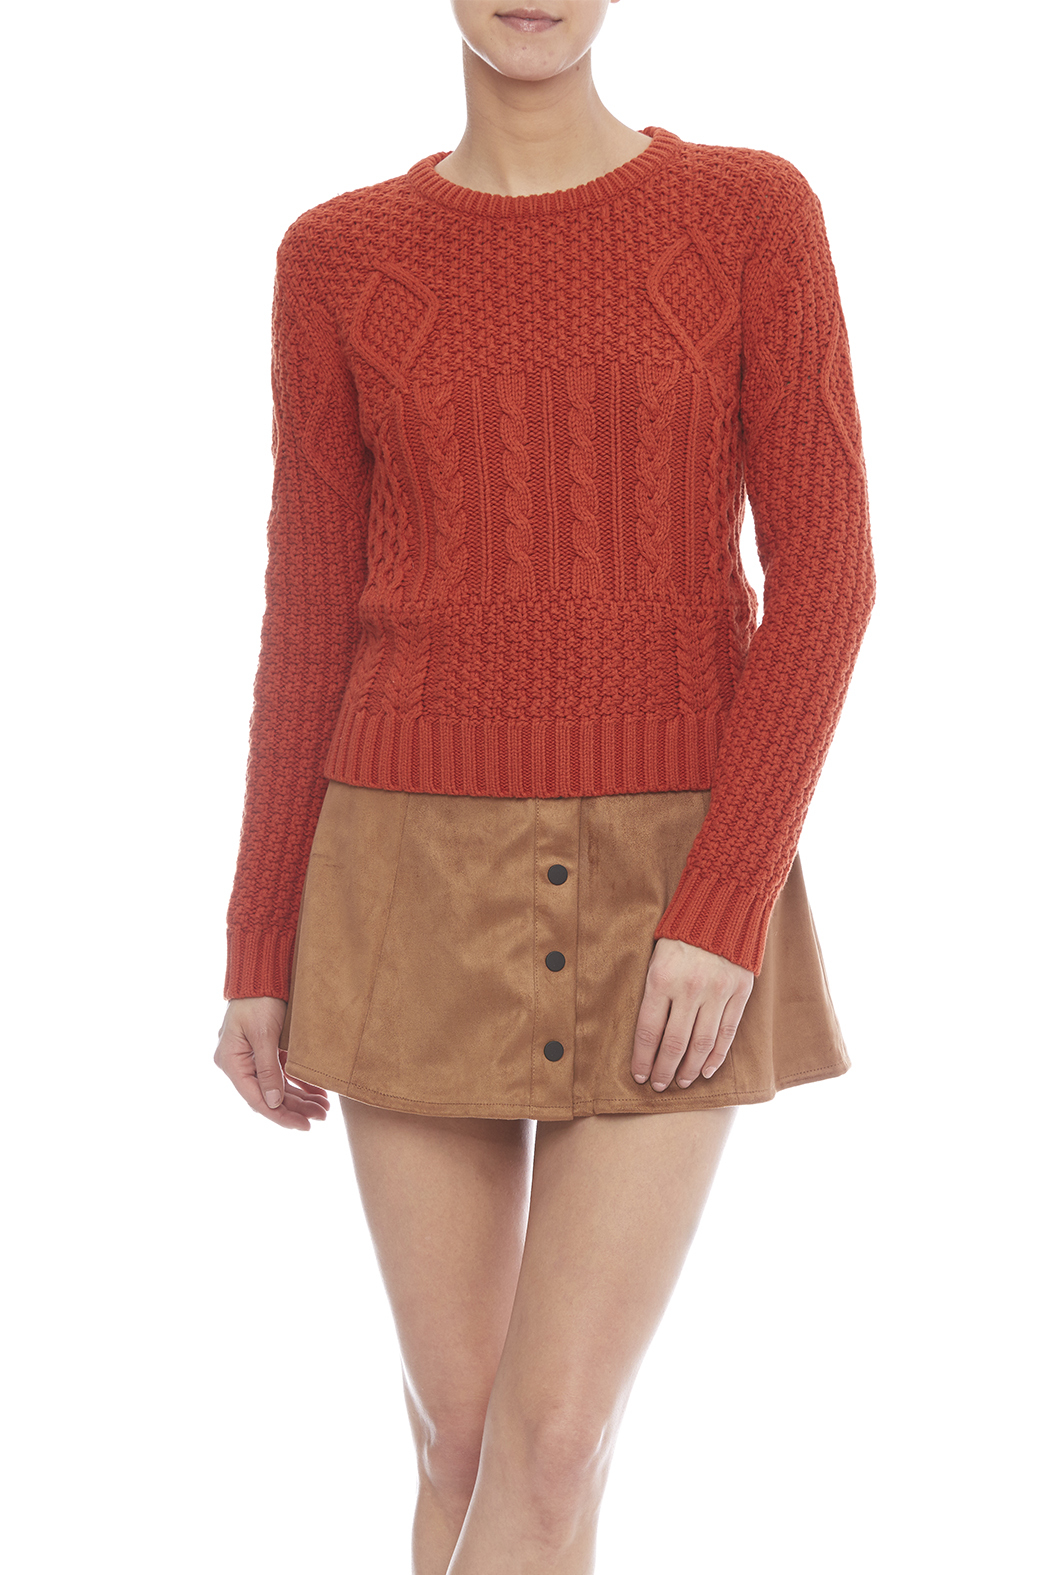 446229f893b Dex Orange Cable Knit Sweater from Manhattan by Marissa's Closet ...